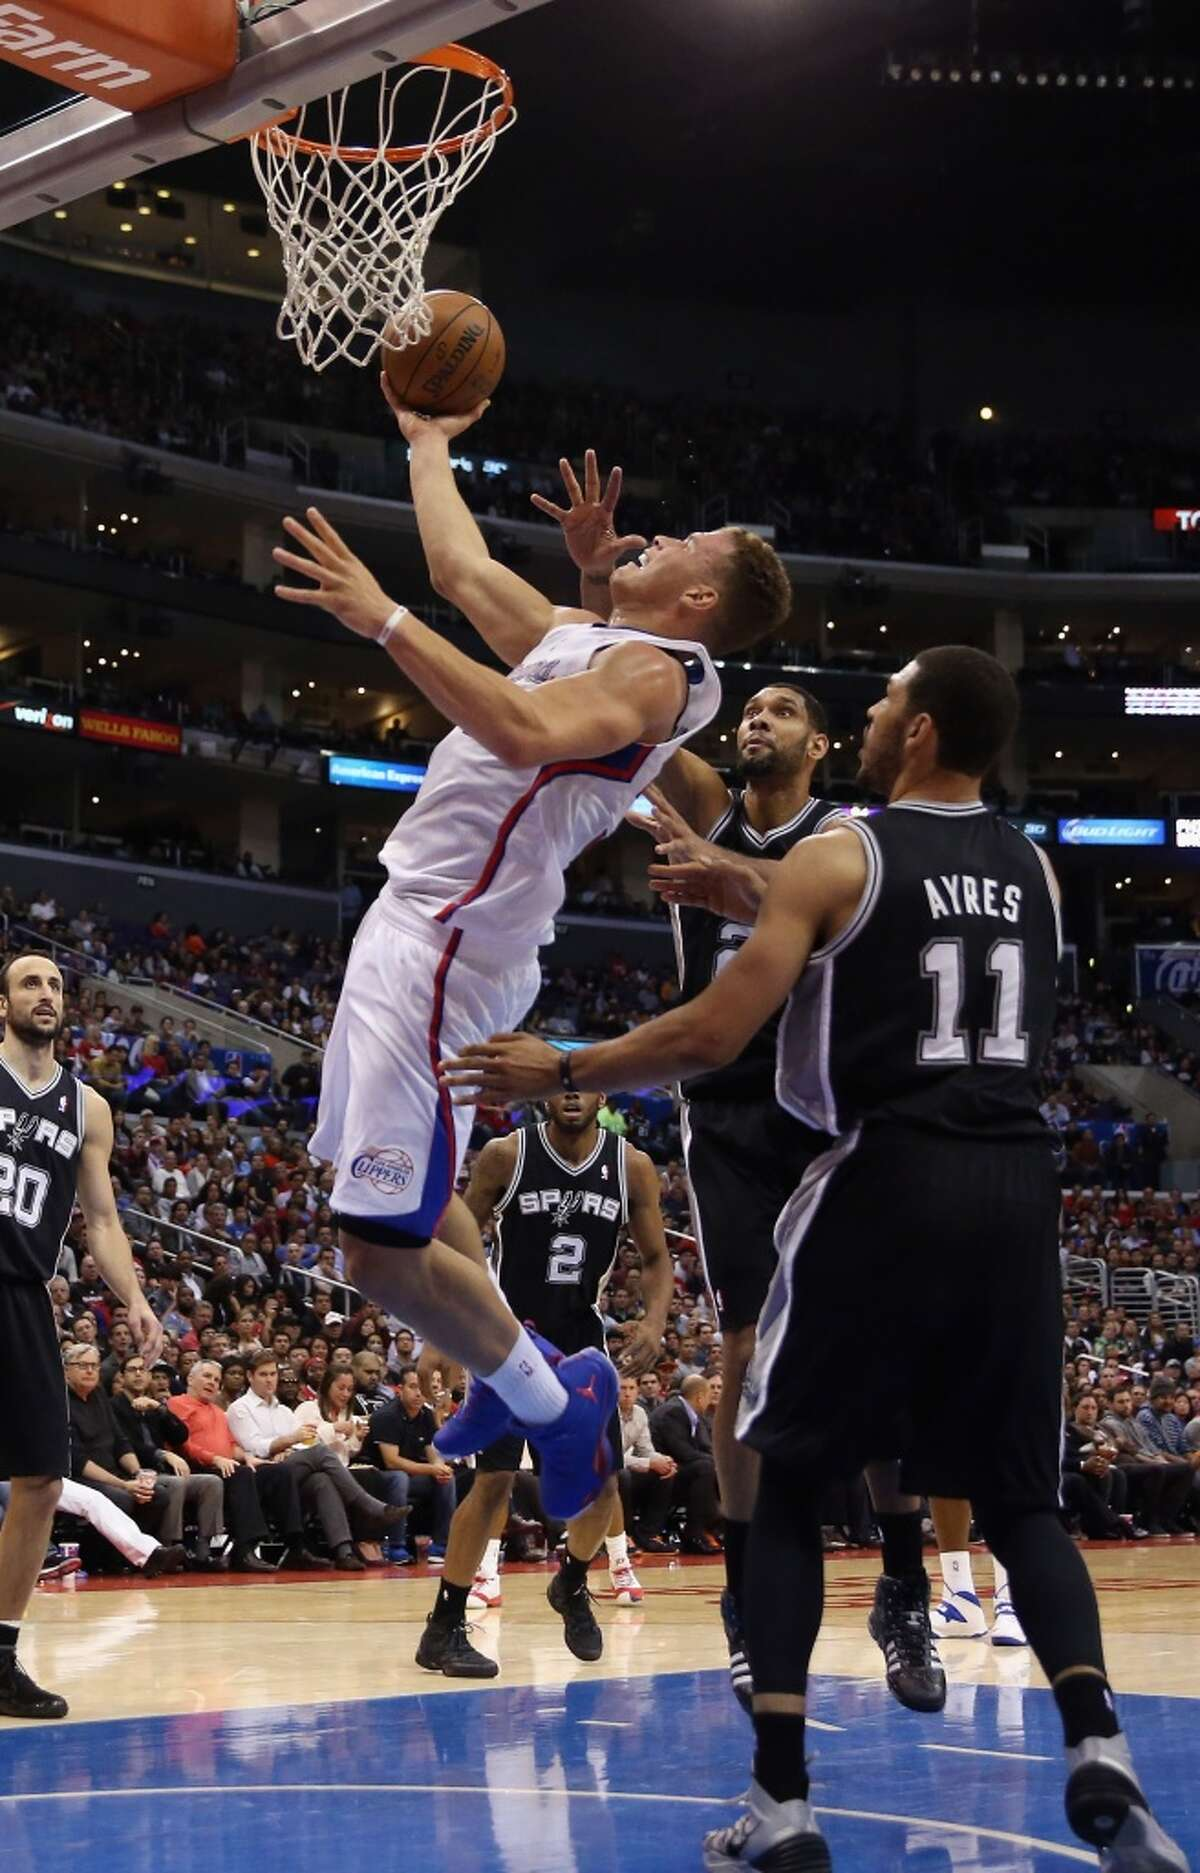 Blake Griffin #32 of the Los Angeles Clippers drives to the basket past between Tim Duncan #21 and Jeff Ayres #11 of the San Antonio Spurs in the first half at Staples Center on December 16, 2013 in Los Angeles, California.